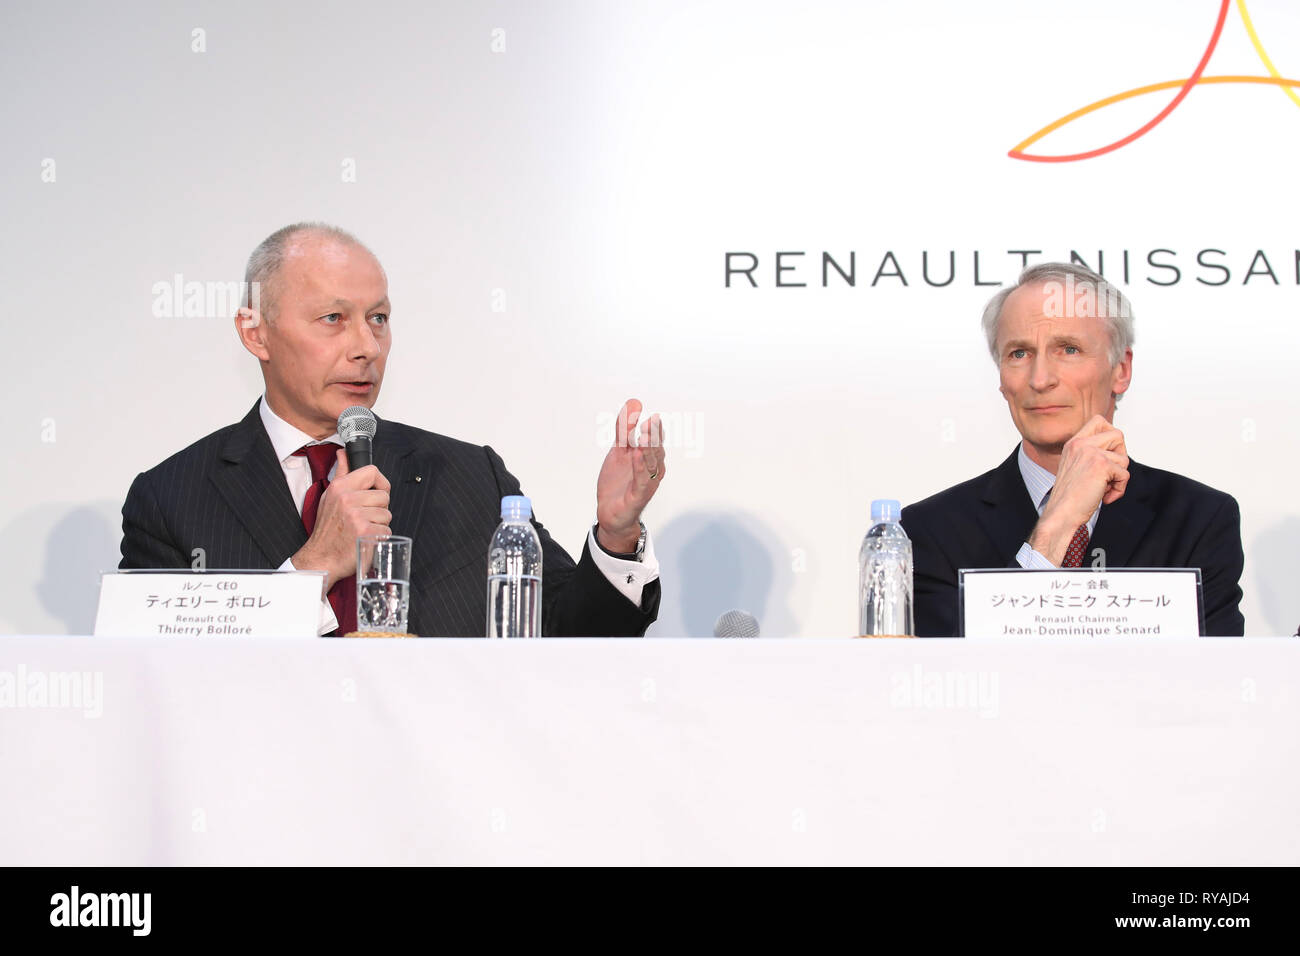 Renault CEO Thierry Bollore, left, and Renault Chairman Jean